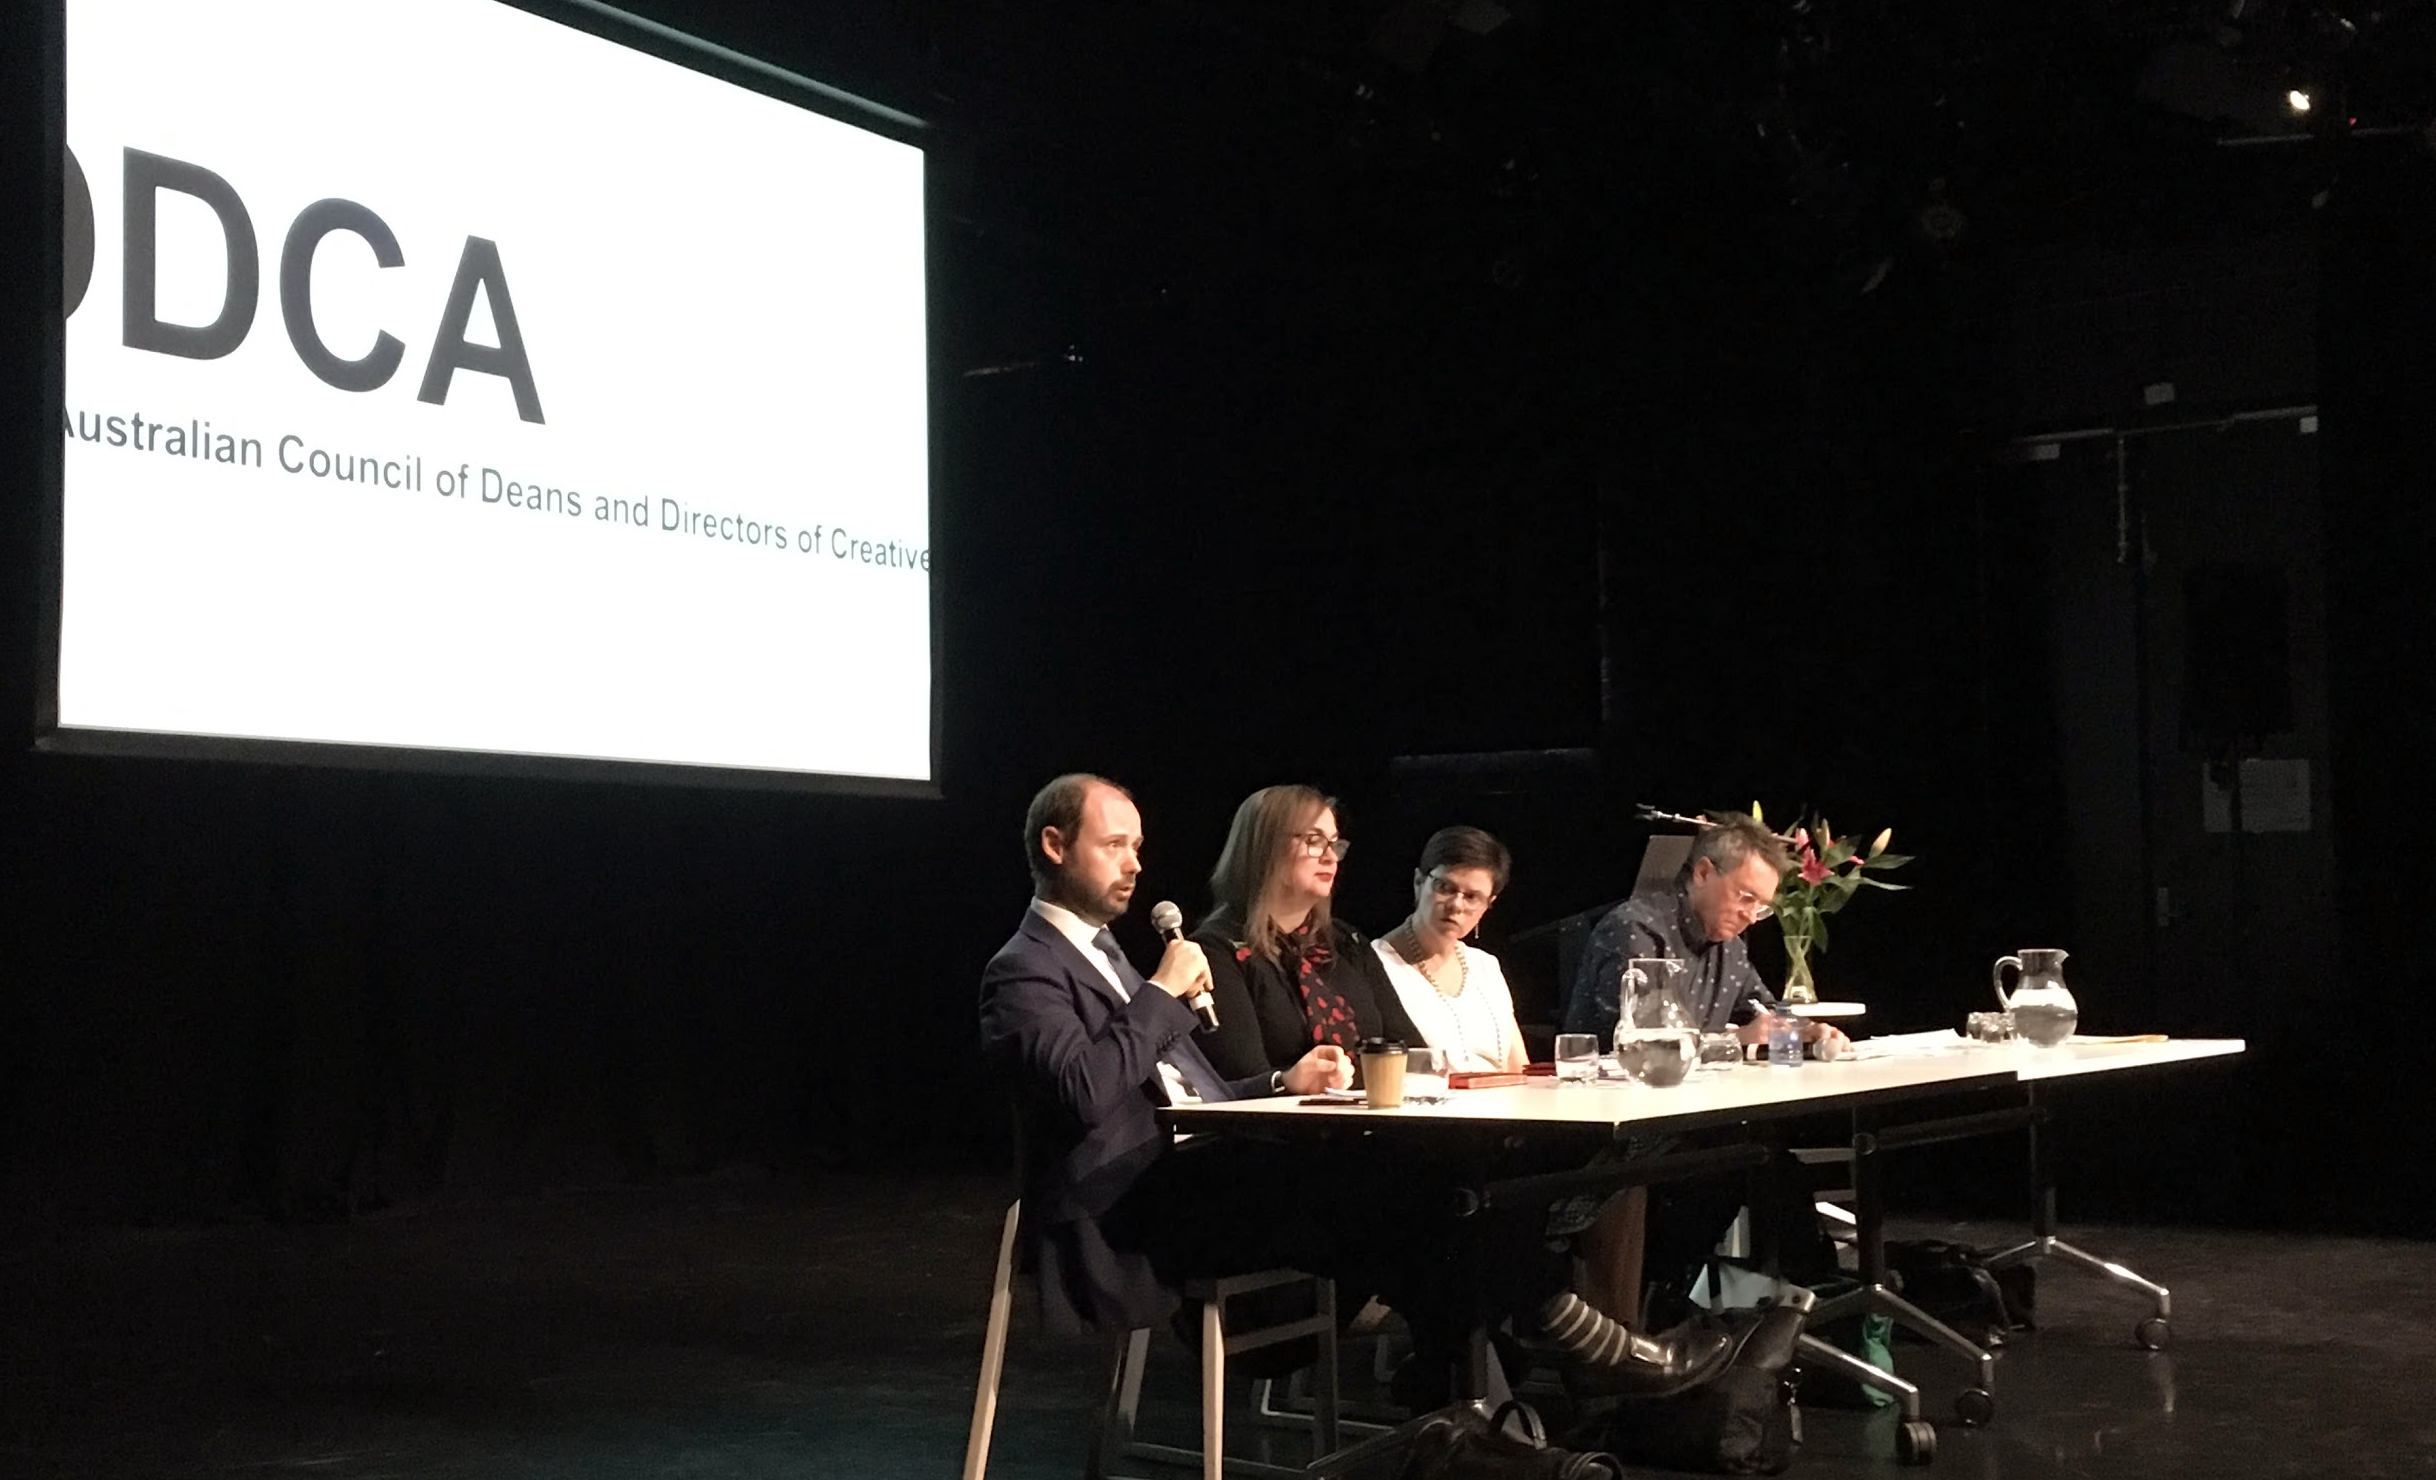 Beyond Research Panel with (L-R) Dr. Tim Cahill, Prof. Cat Hope, Prof. Joanne Tompkins & Prof. Clive Barstow